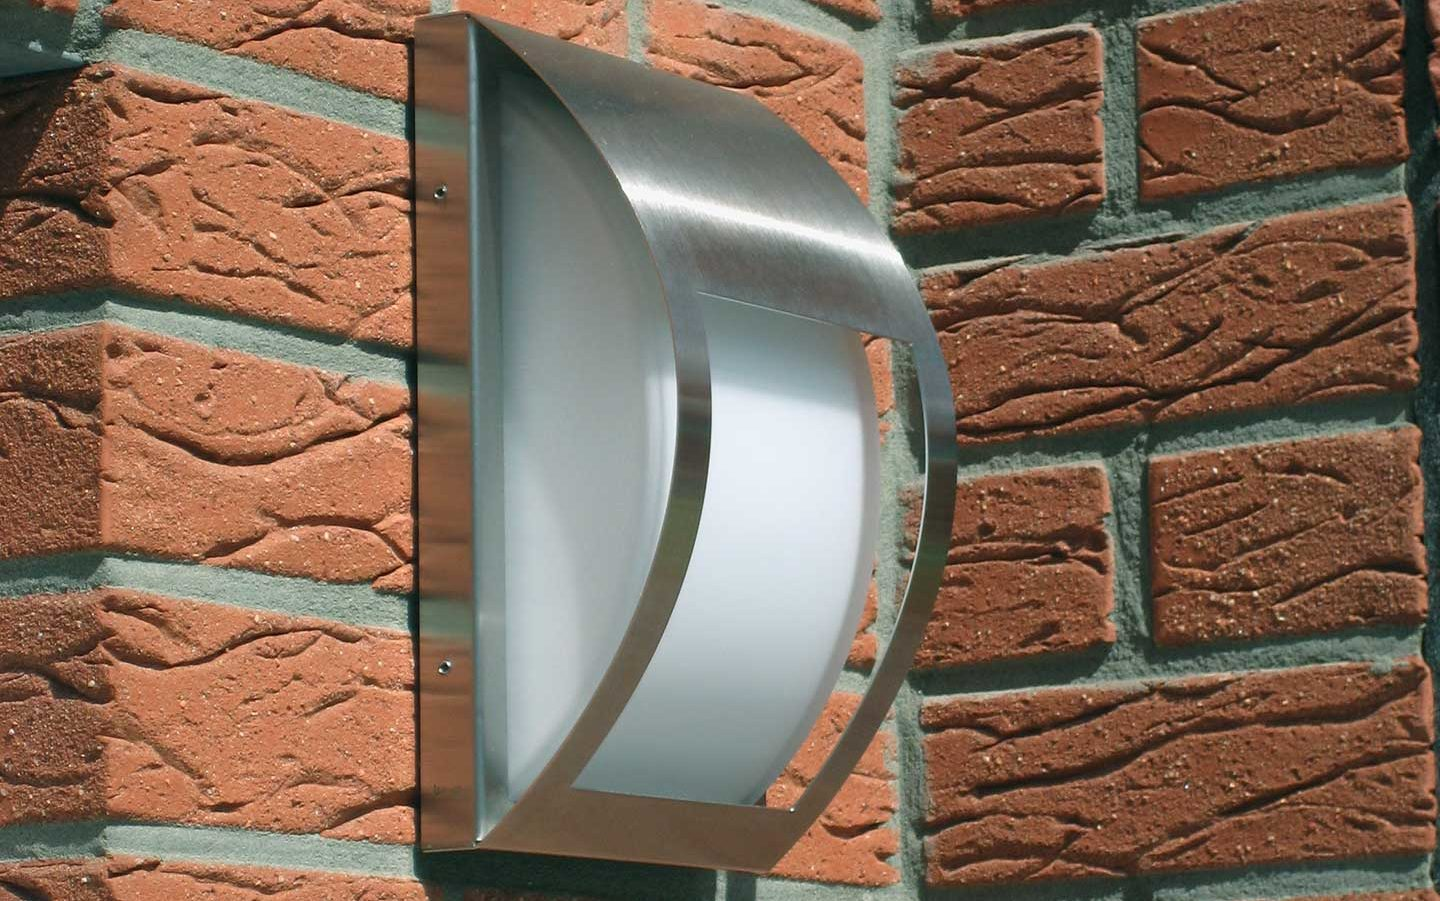 Close-up of a modern stainless steel wall lamp at a house entrance.